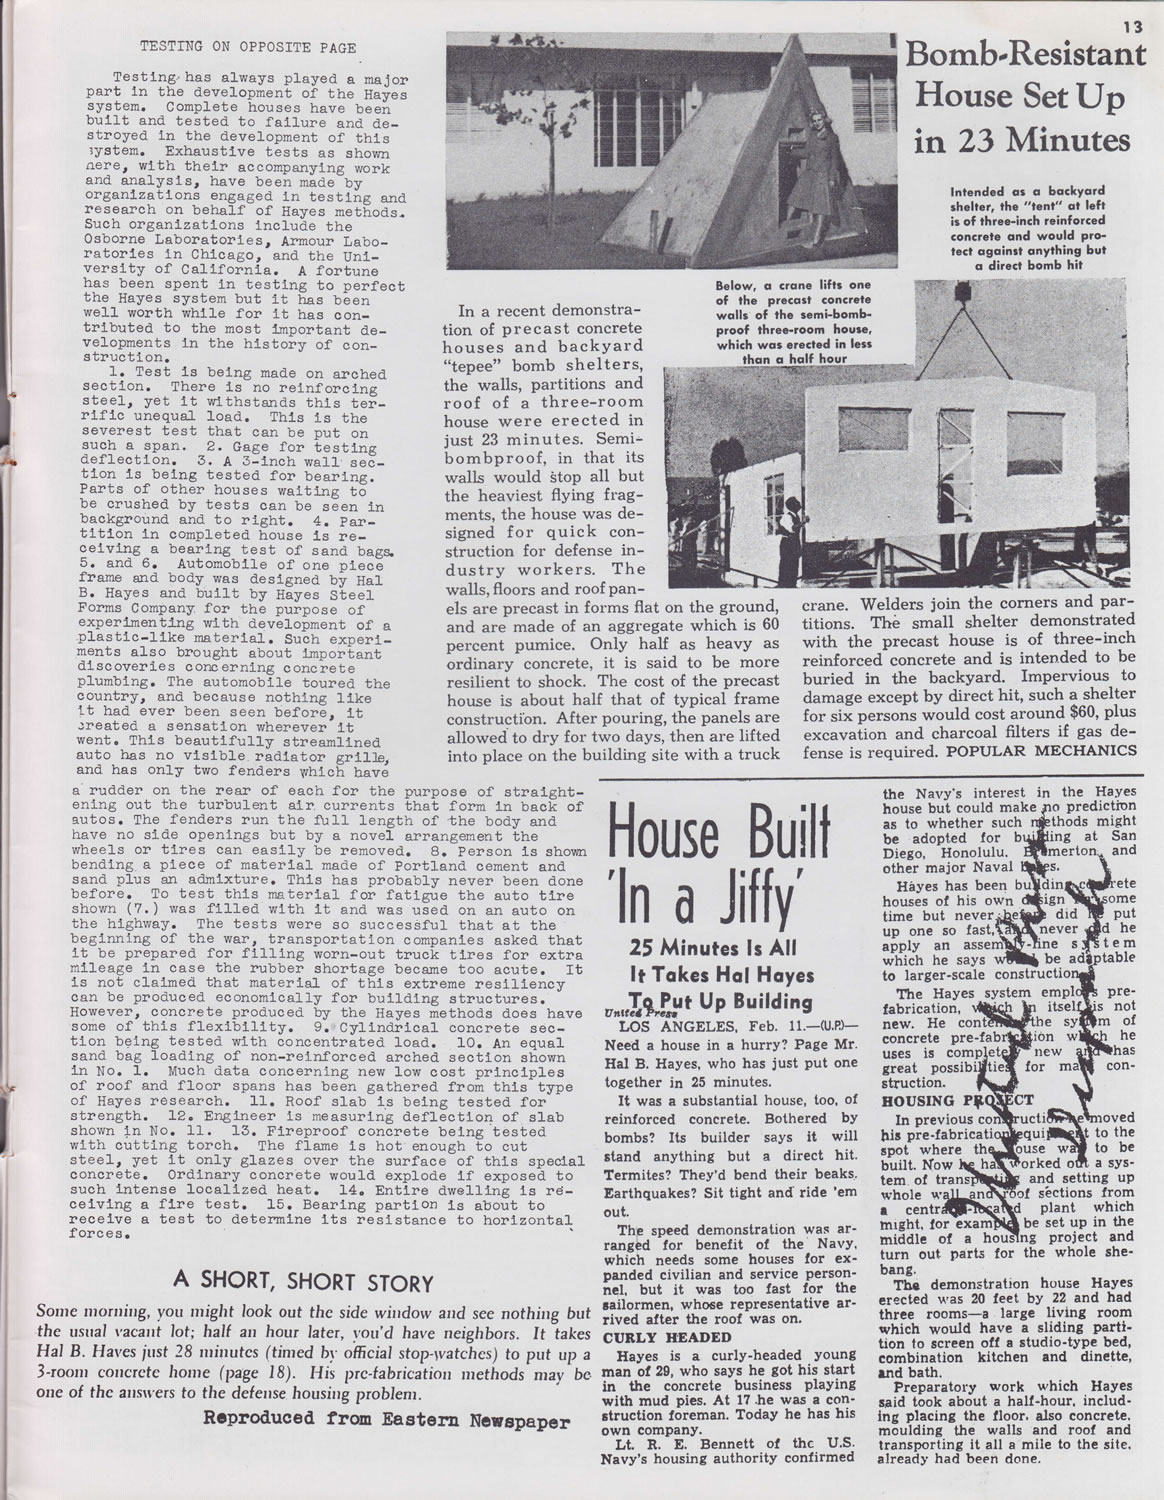 HBH_450000Prefabricated_Page_13